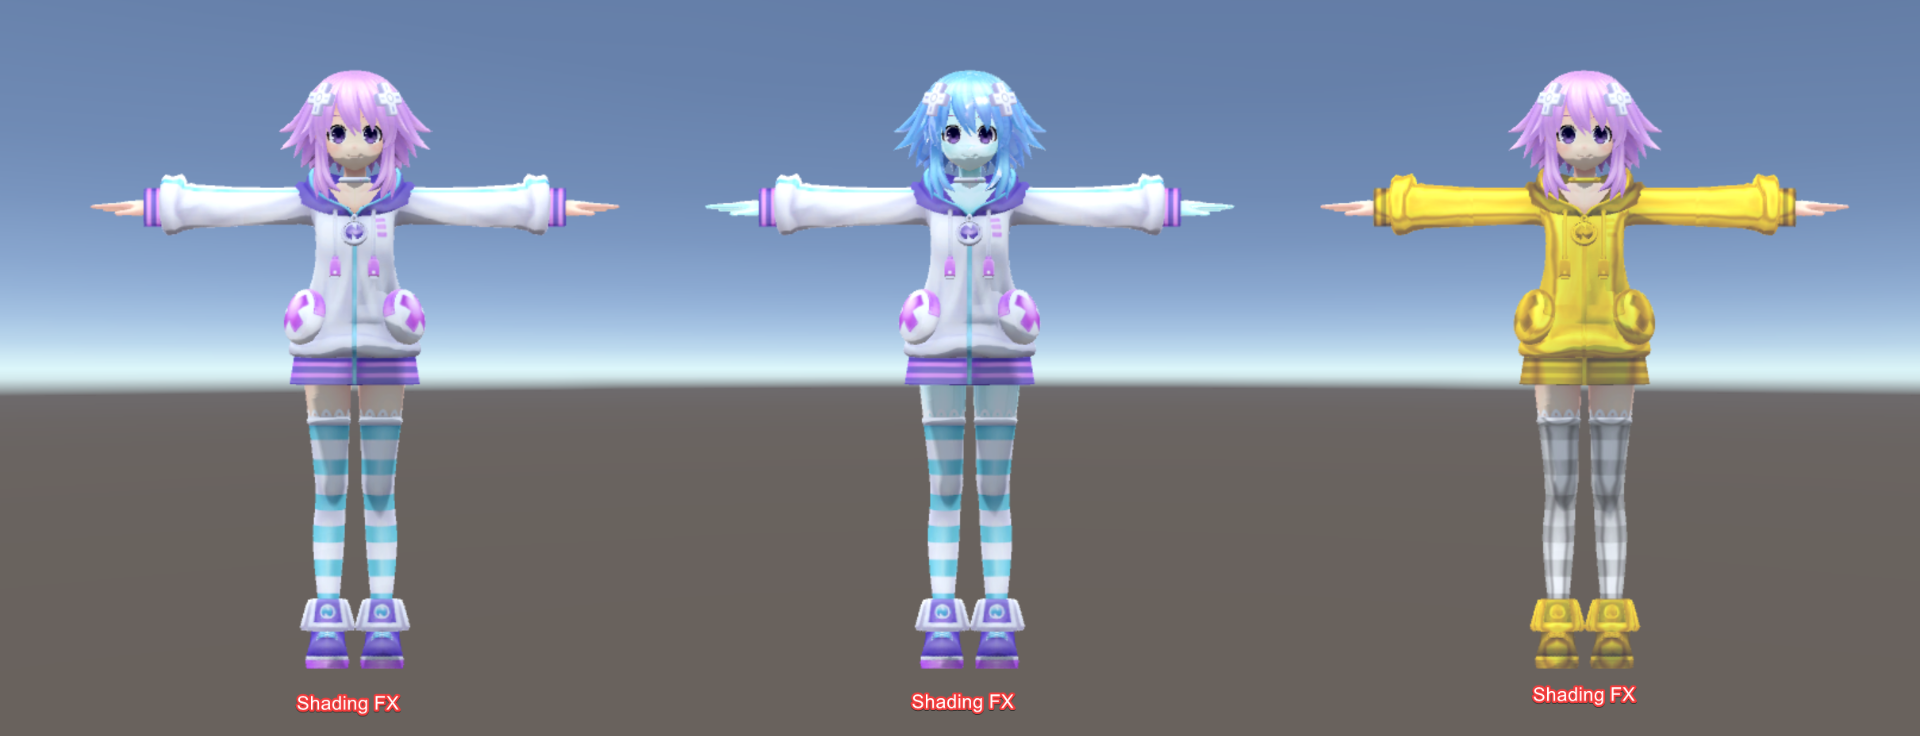 Madison : Vrchat commissions discord